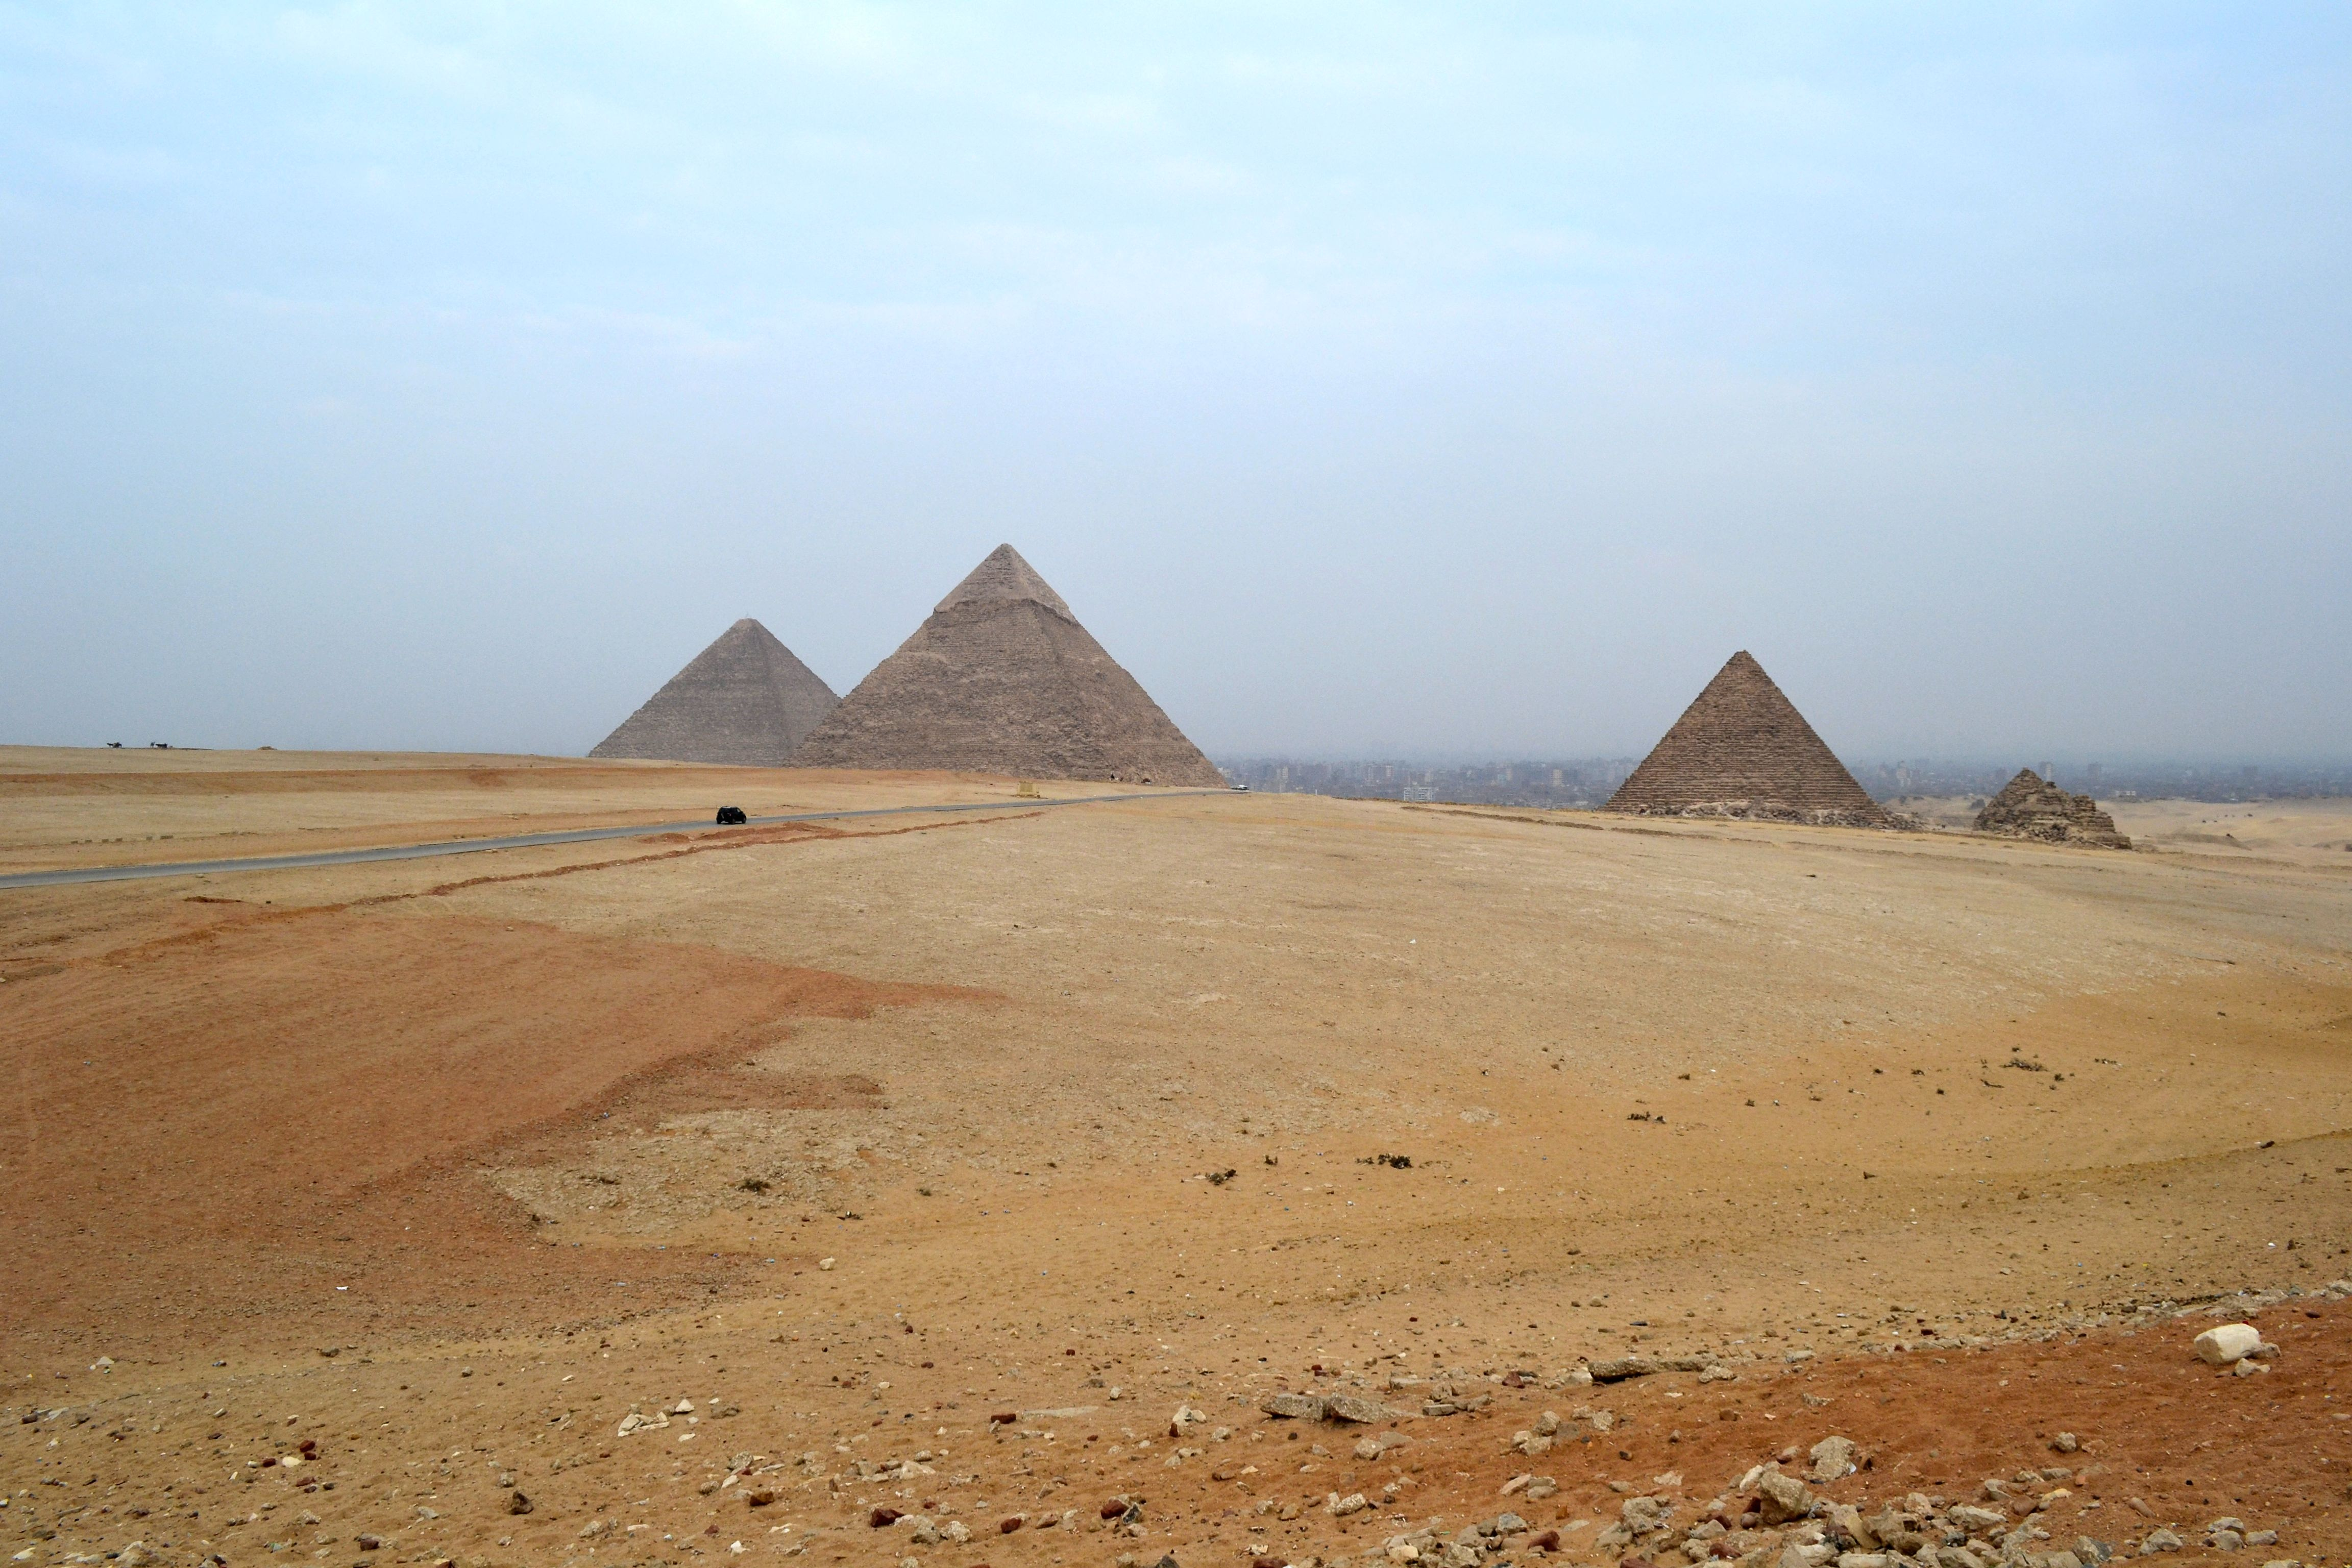 the great pyramids of giza essay Essay on khufu: great pyramid of giza and solid limestone blocks great pyramid is the oldest and largest of the three pyramids at giza and was made with more than 2 million solid limestone blocks.